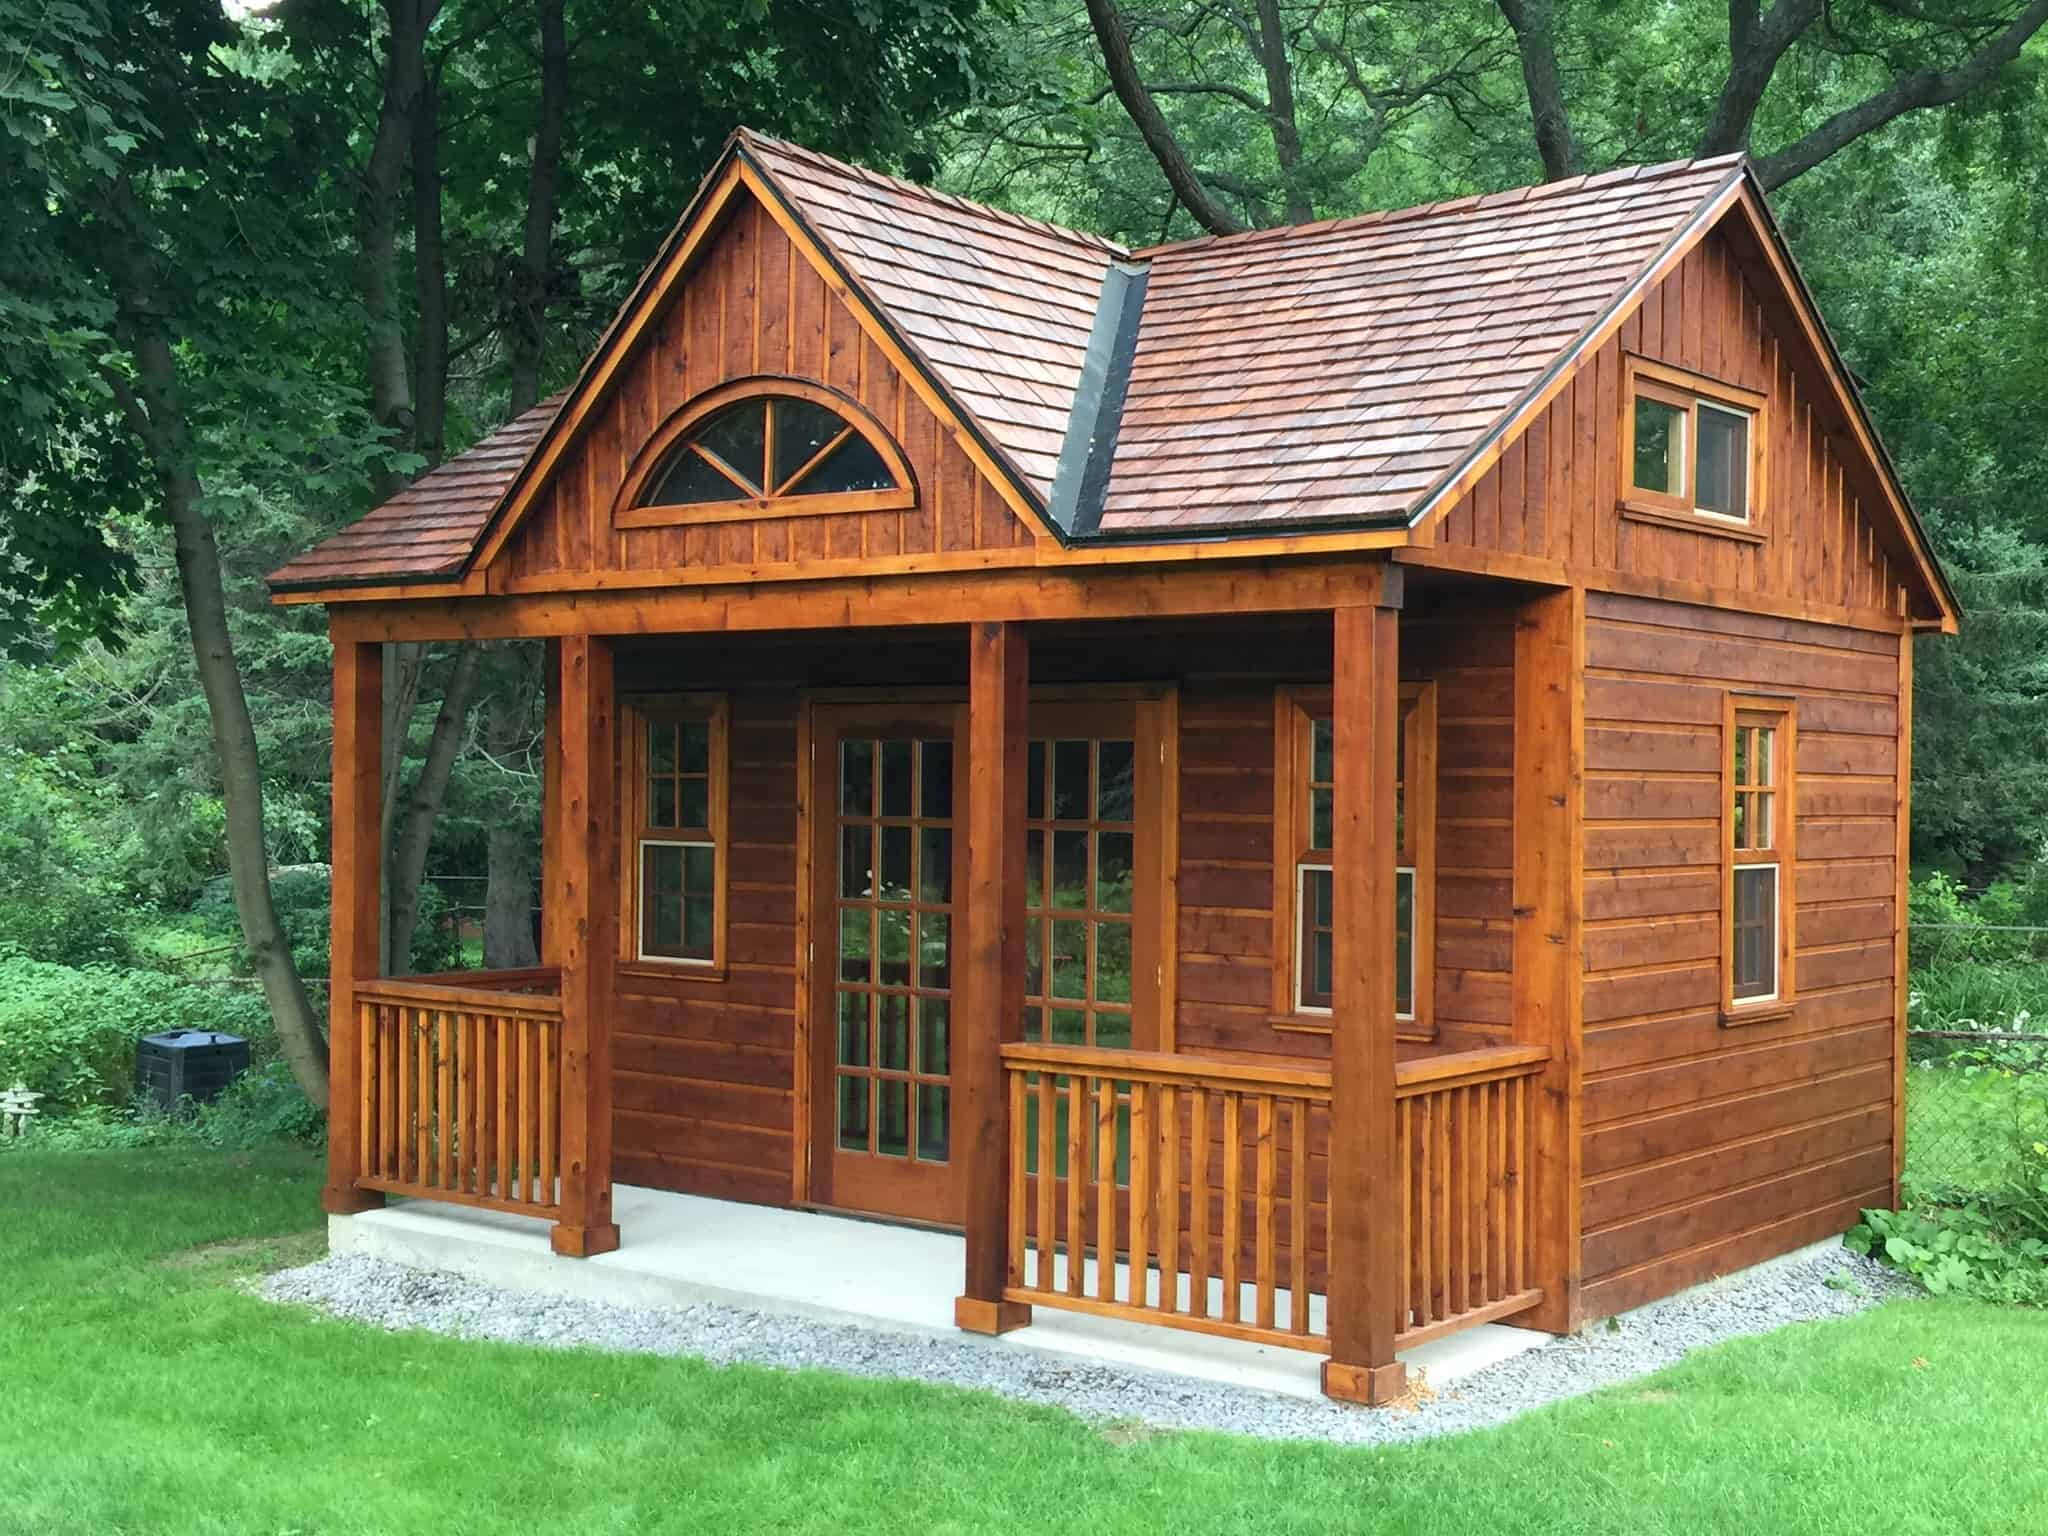 How to Choose Siding for Small Structures